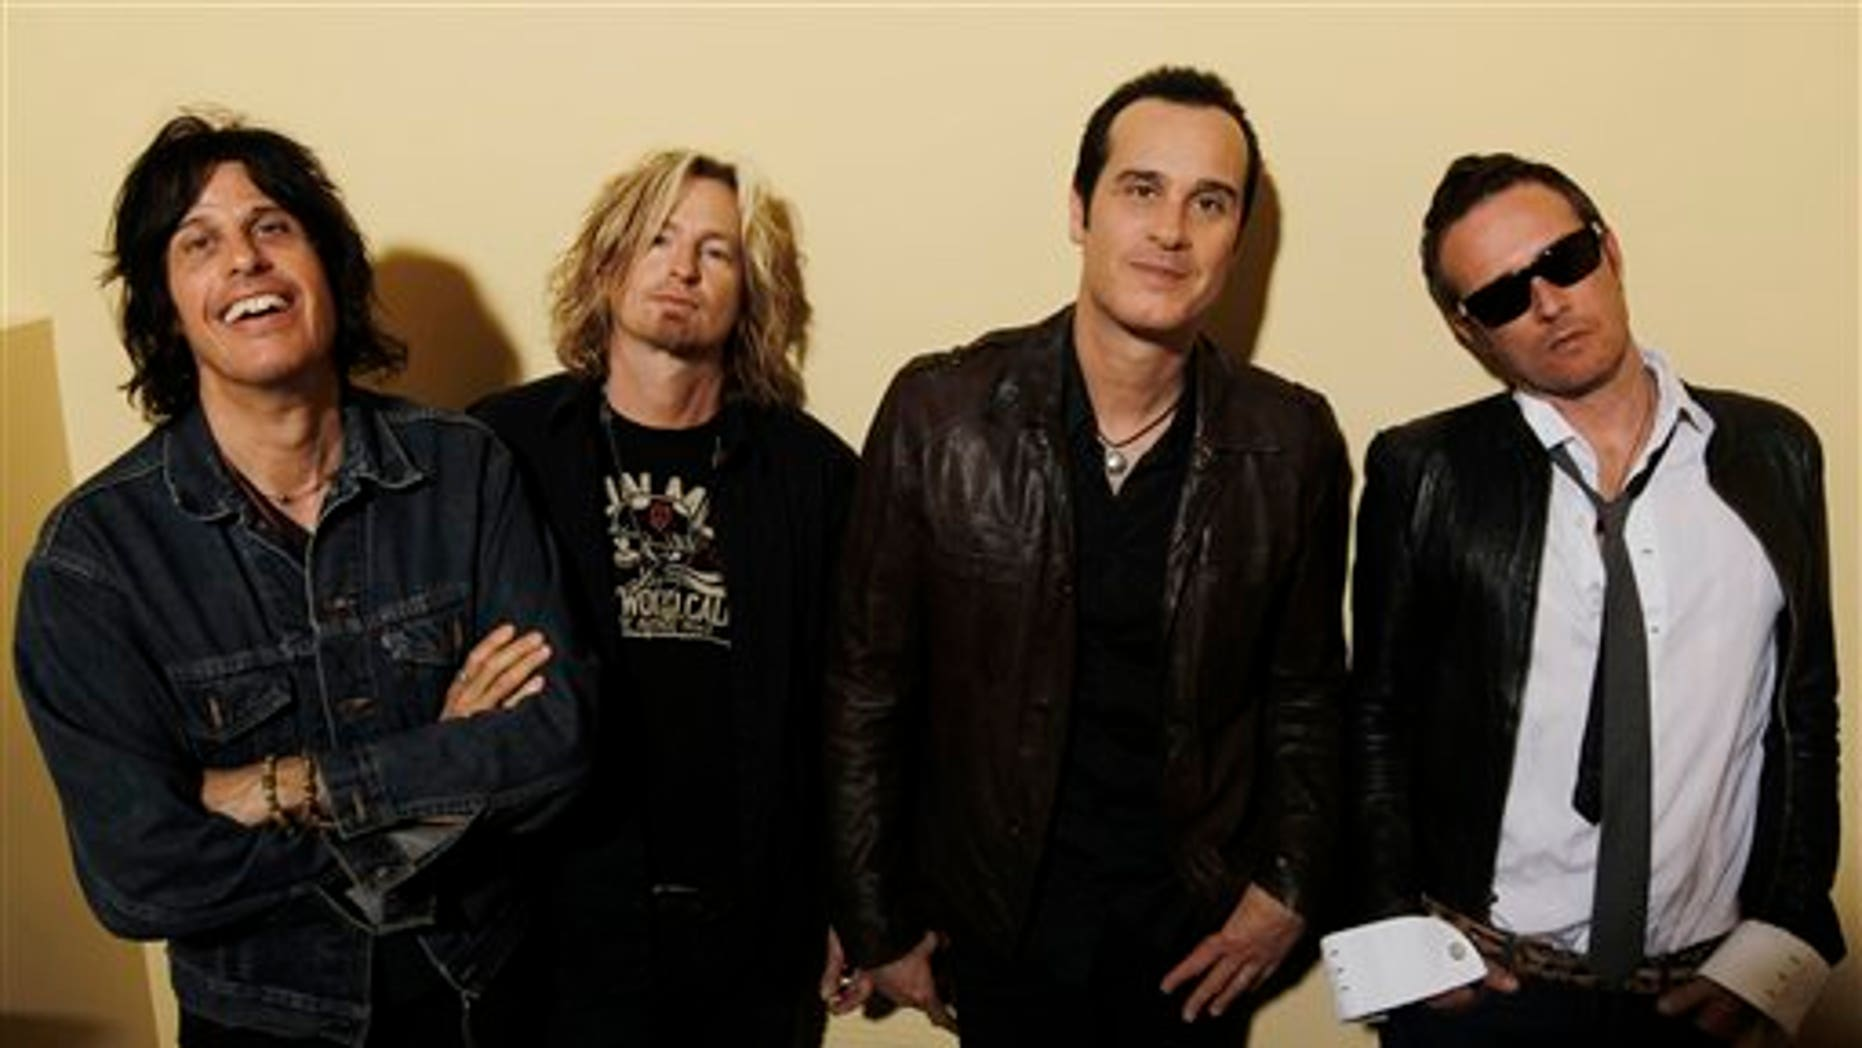 This April 30, 2010 file photo shows the Stone Temple Pilots, from left, Dean Deleo, Eric Kretz, Robert Deleo, and Scott Weiland from the band Stone Temple Pilots, pose for a portrait in Santa Monica, Calif.